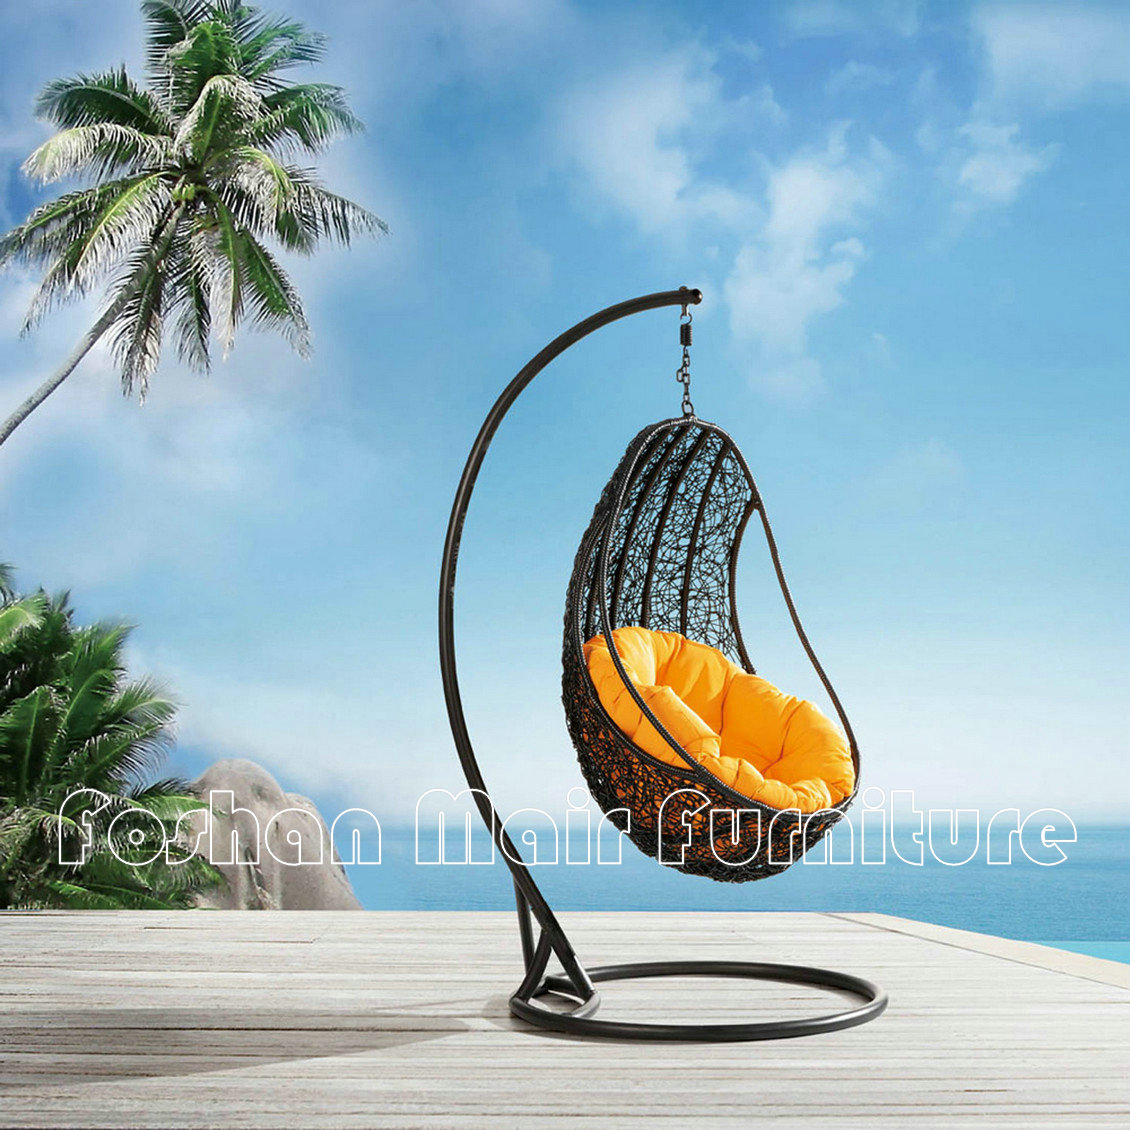 Outdoor brown wicker rattan swingasan chair with yellow cushion and brown metal stand near the beach ideas